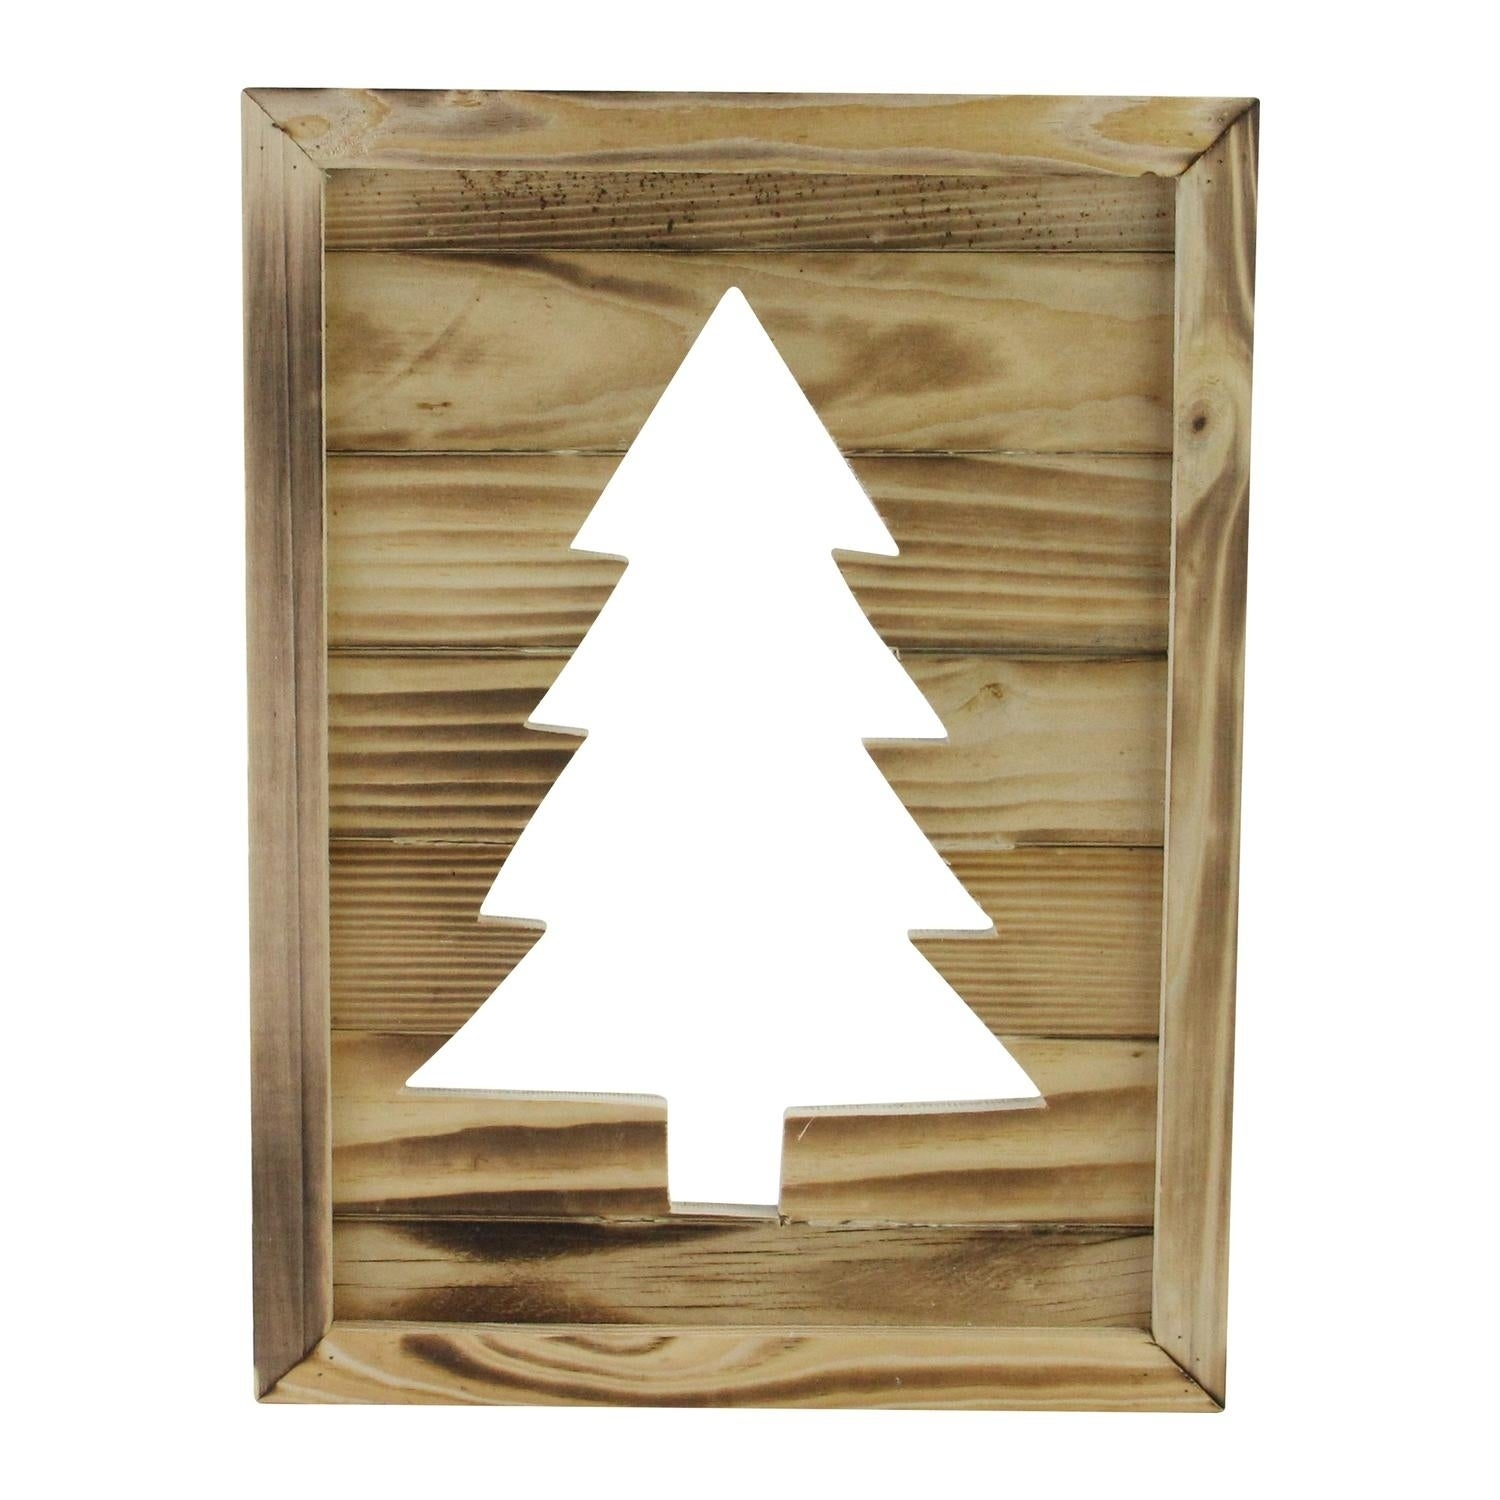 13 75 Framed Rustic Wood Christmas Tree Out Wall Hanging Decoration Overstock 18071979